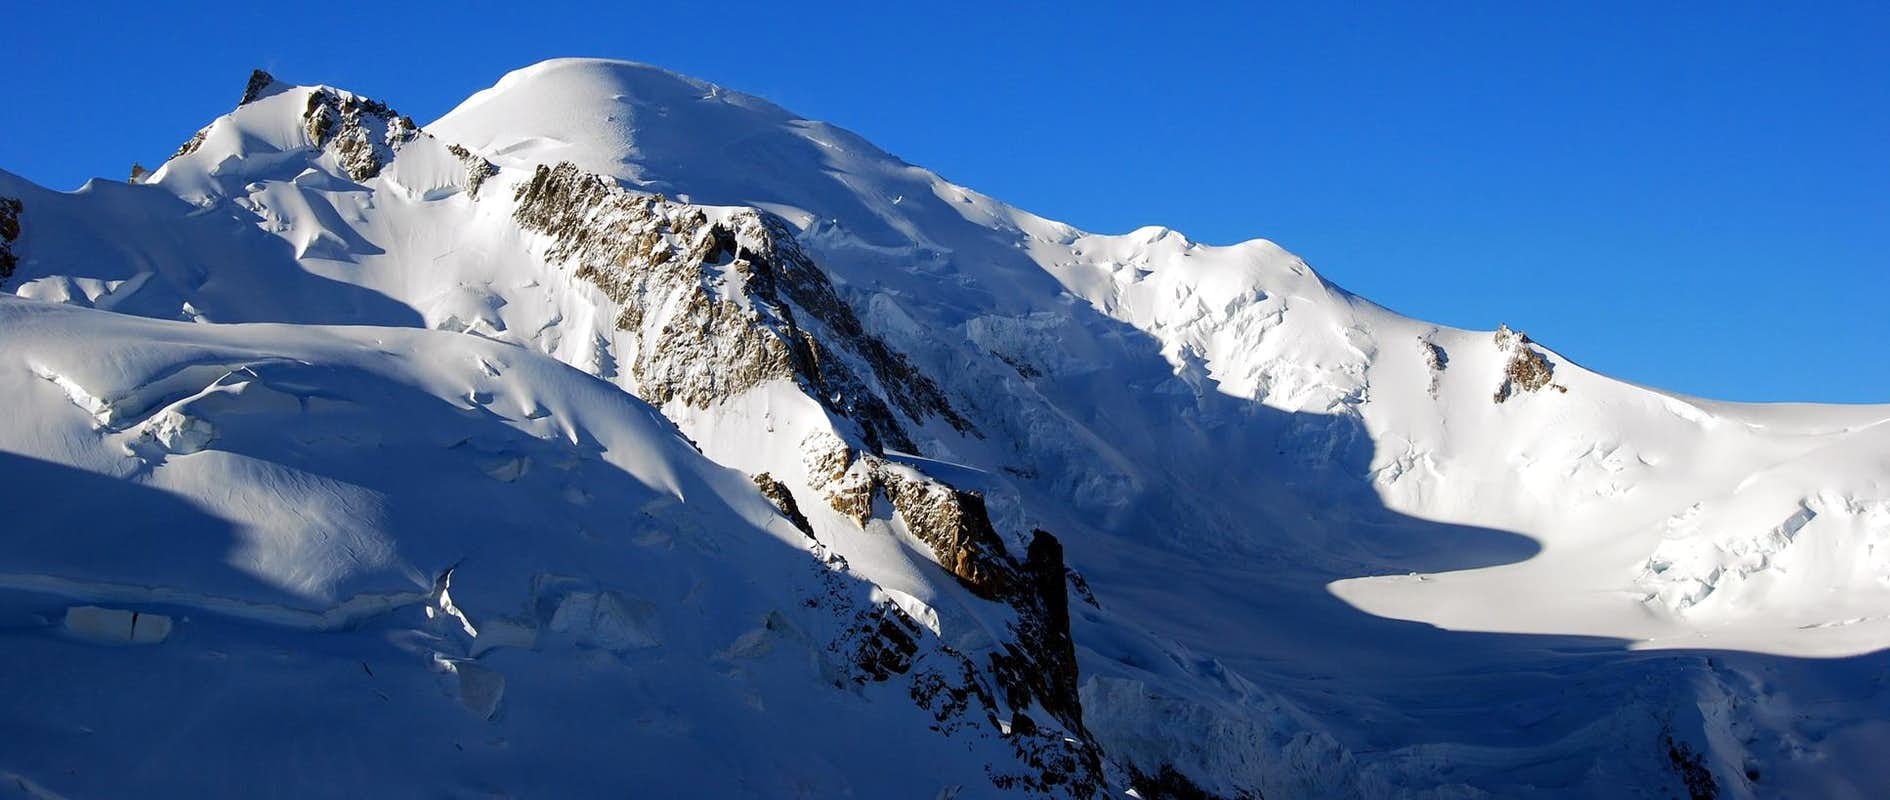 Mt. Blanc - Bosses ridge